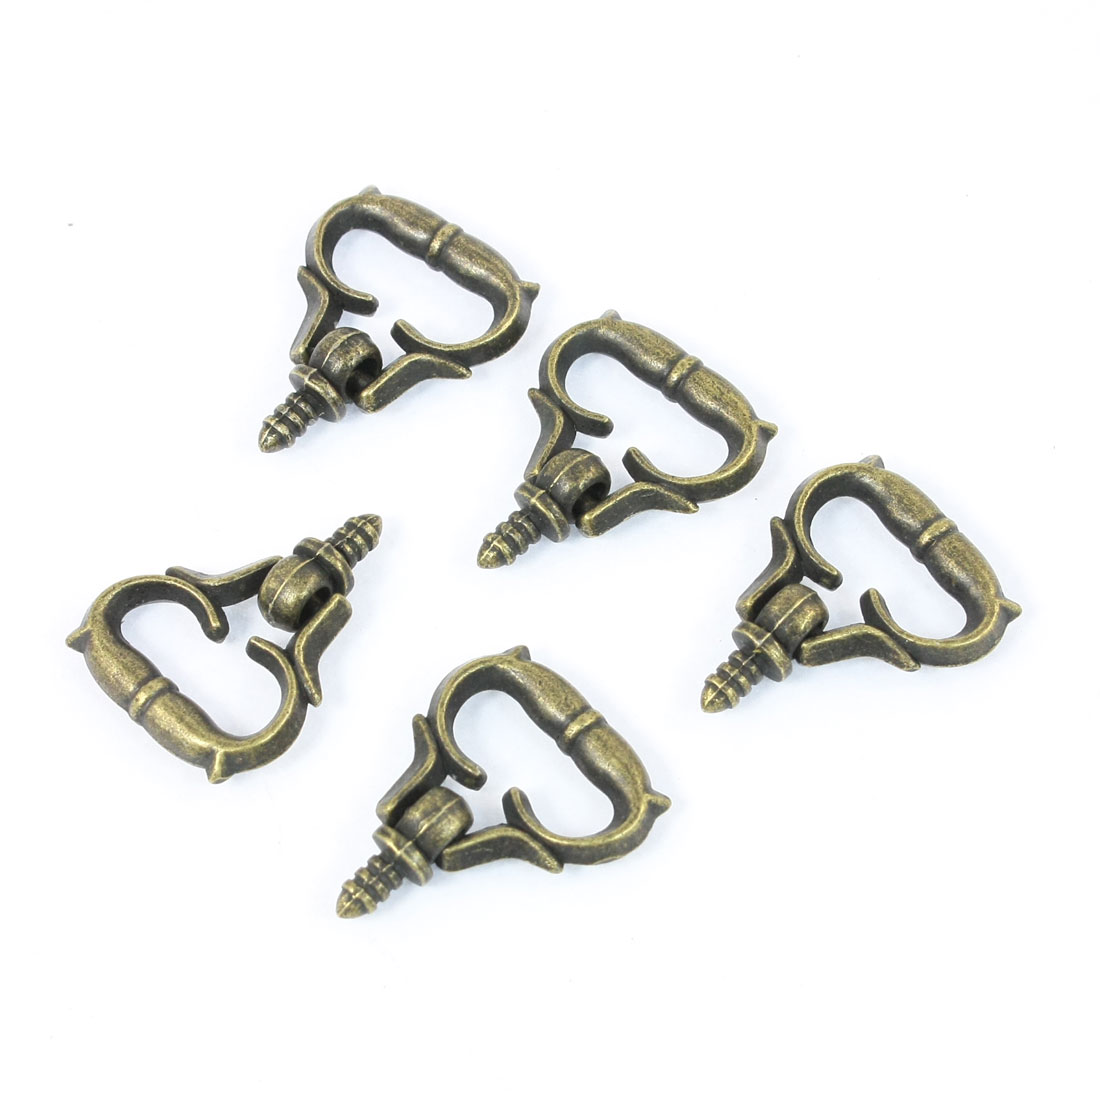 5 Pcs 3mm Male Thread Pull Knob Handle Bronze Tone for Dresser Jewelry Box Drawer Door